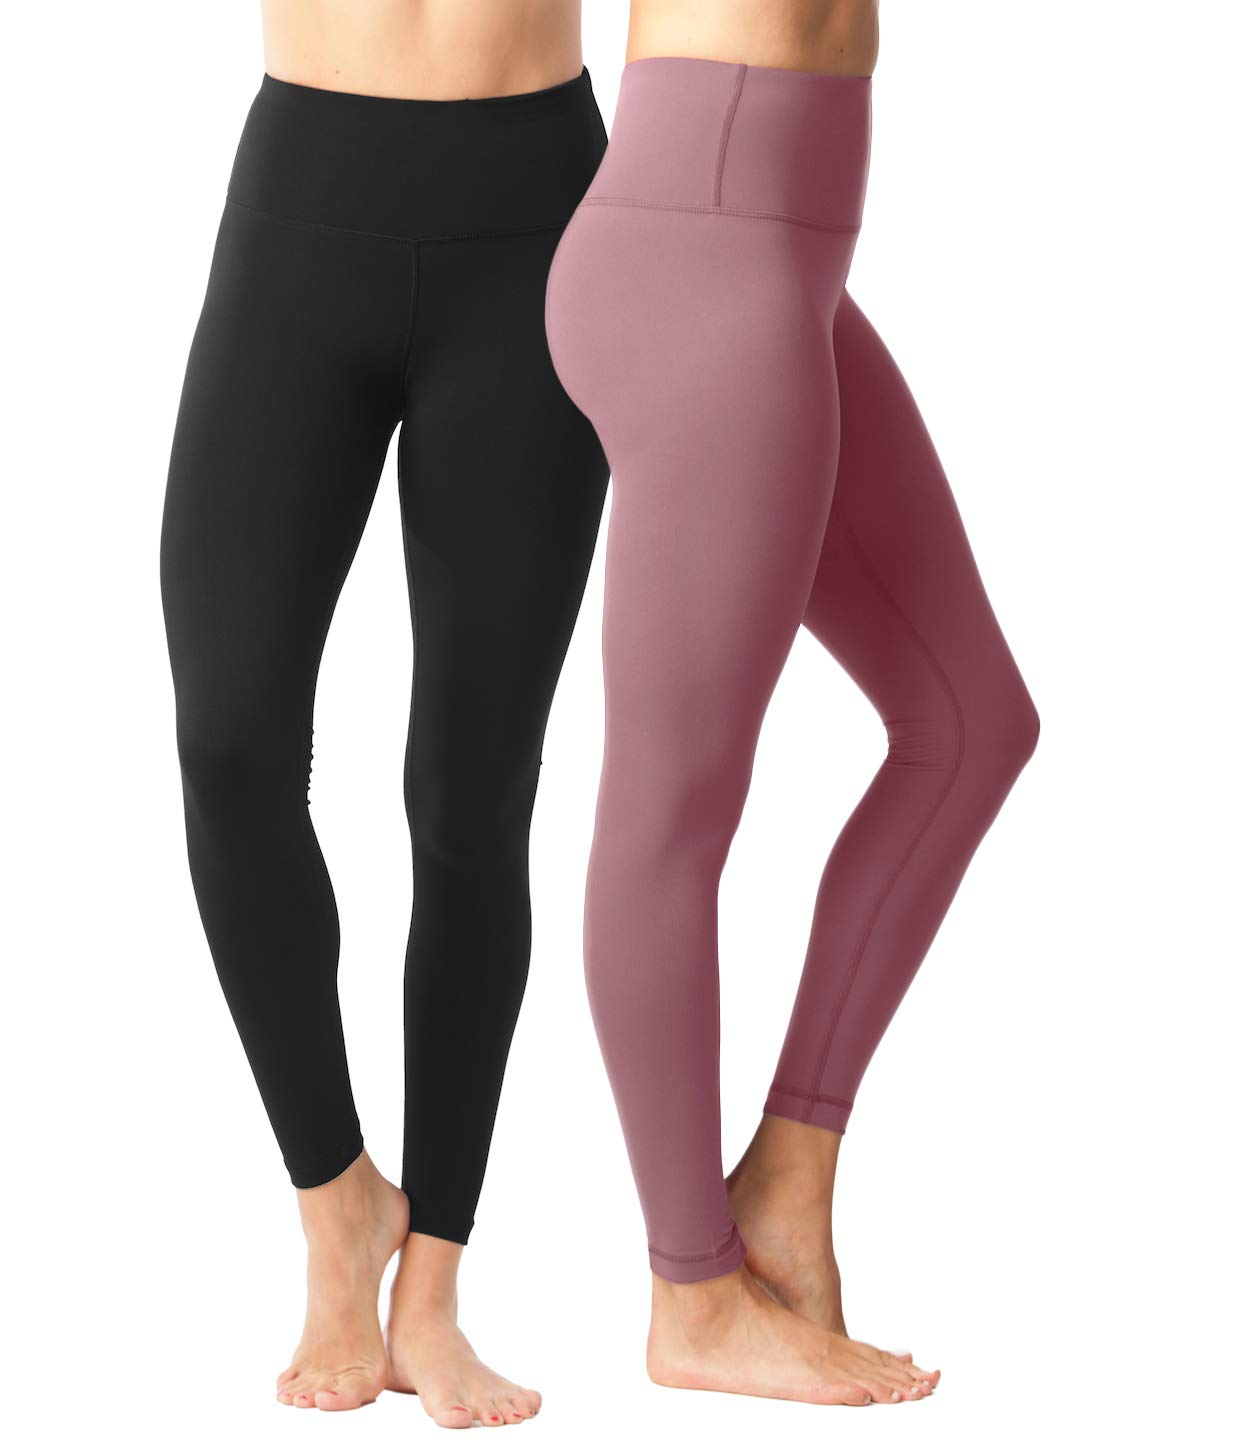 Yogalicious High Waist Ultra Soft Lightweight Leggings - High Rise Yoga Pants - 2 Pack - Black and Pink Cinnamon - XS